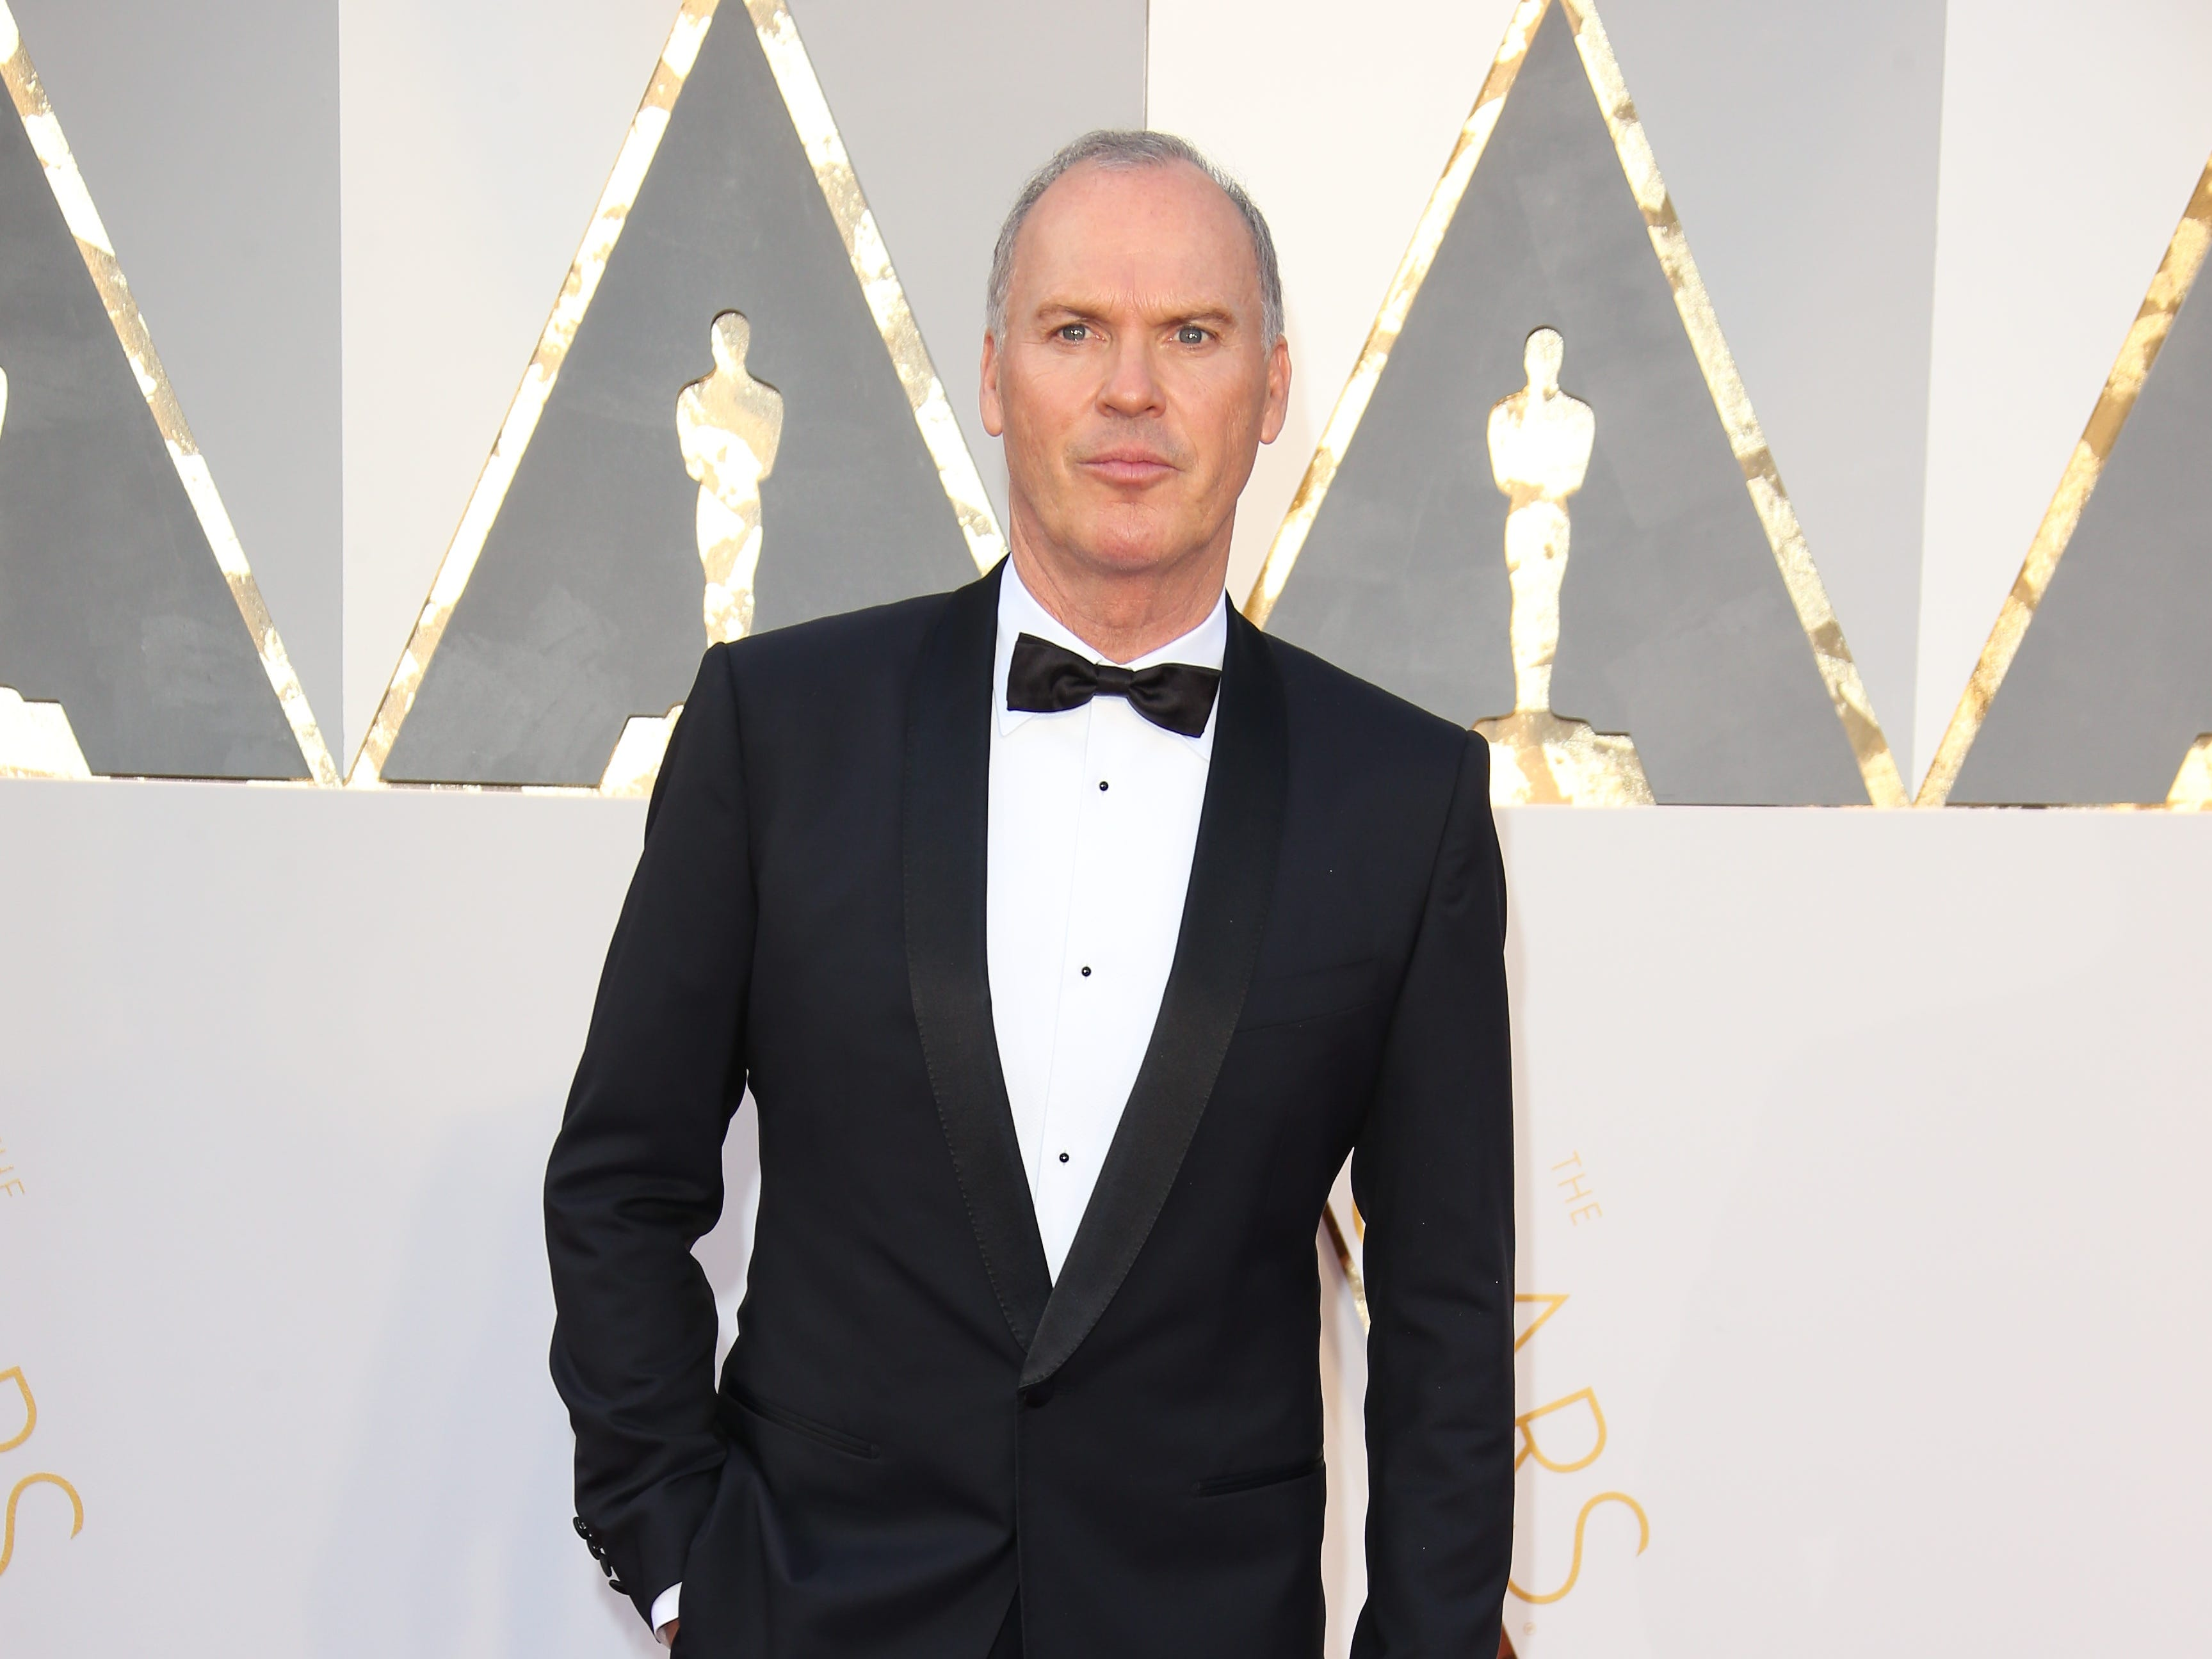 Feb 28, 2016; Hollywood, CA, USA;  Michael Keaton arrives on the red carpet during the 88th annual Academy Awards at the Dolby Theatre. Mandatory Credit: Dan MacMedan-USA TODAY NETWORK ORG XMIT: USATSI-265242 (Via OlyDrop)